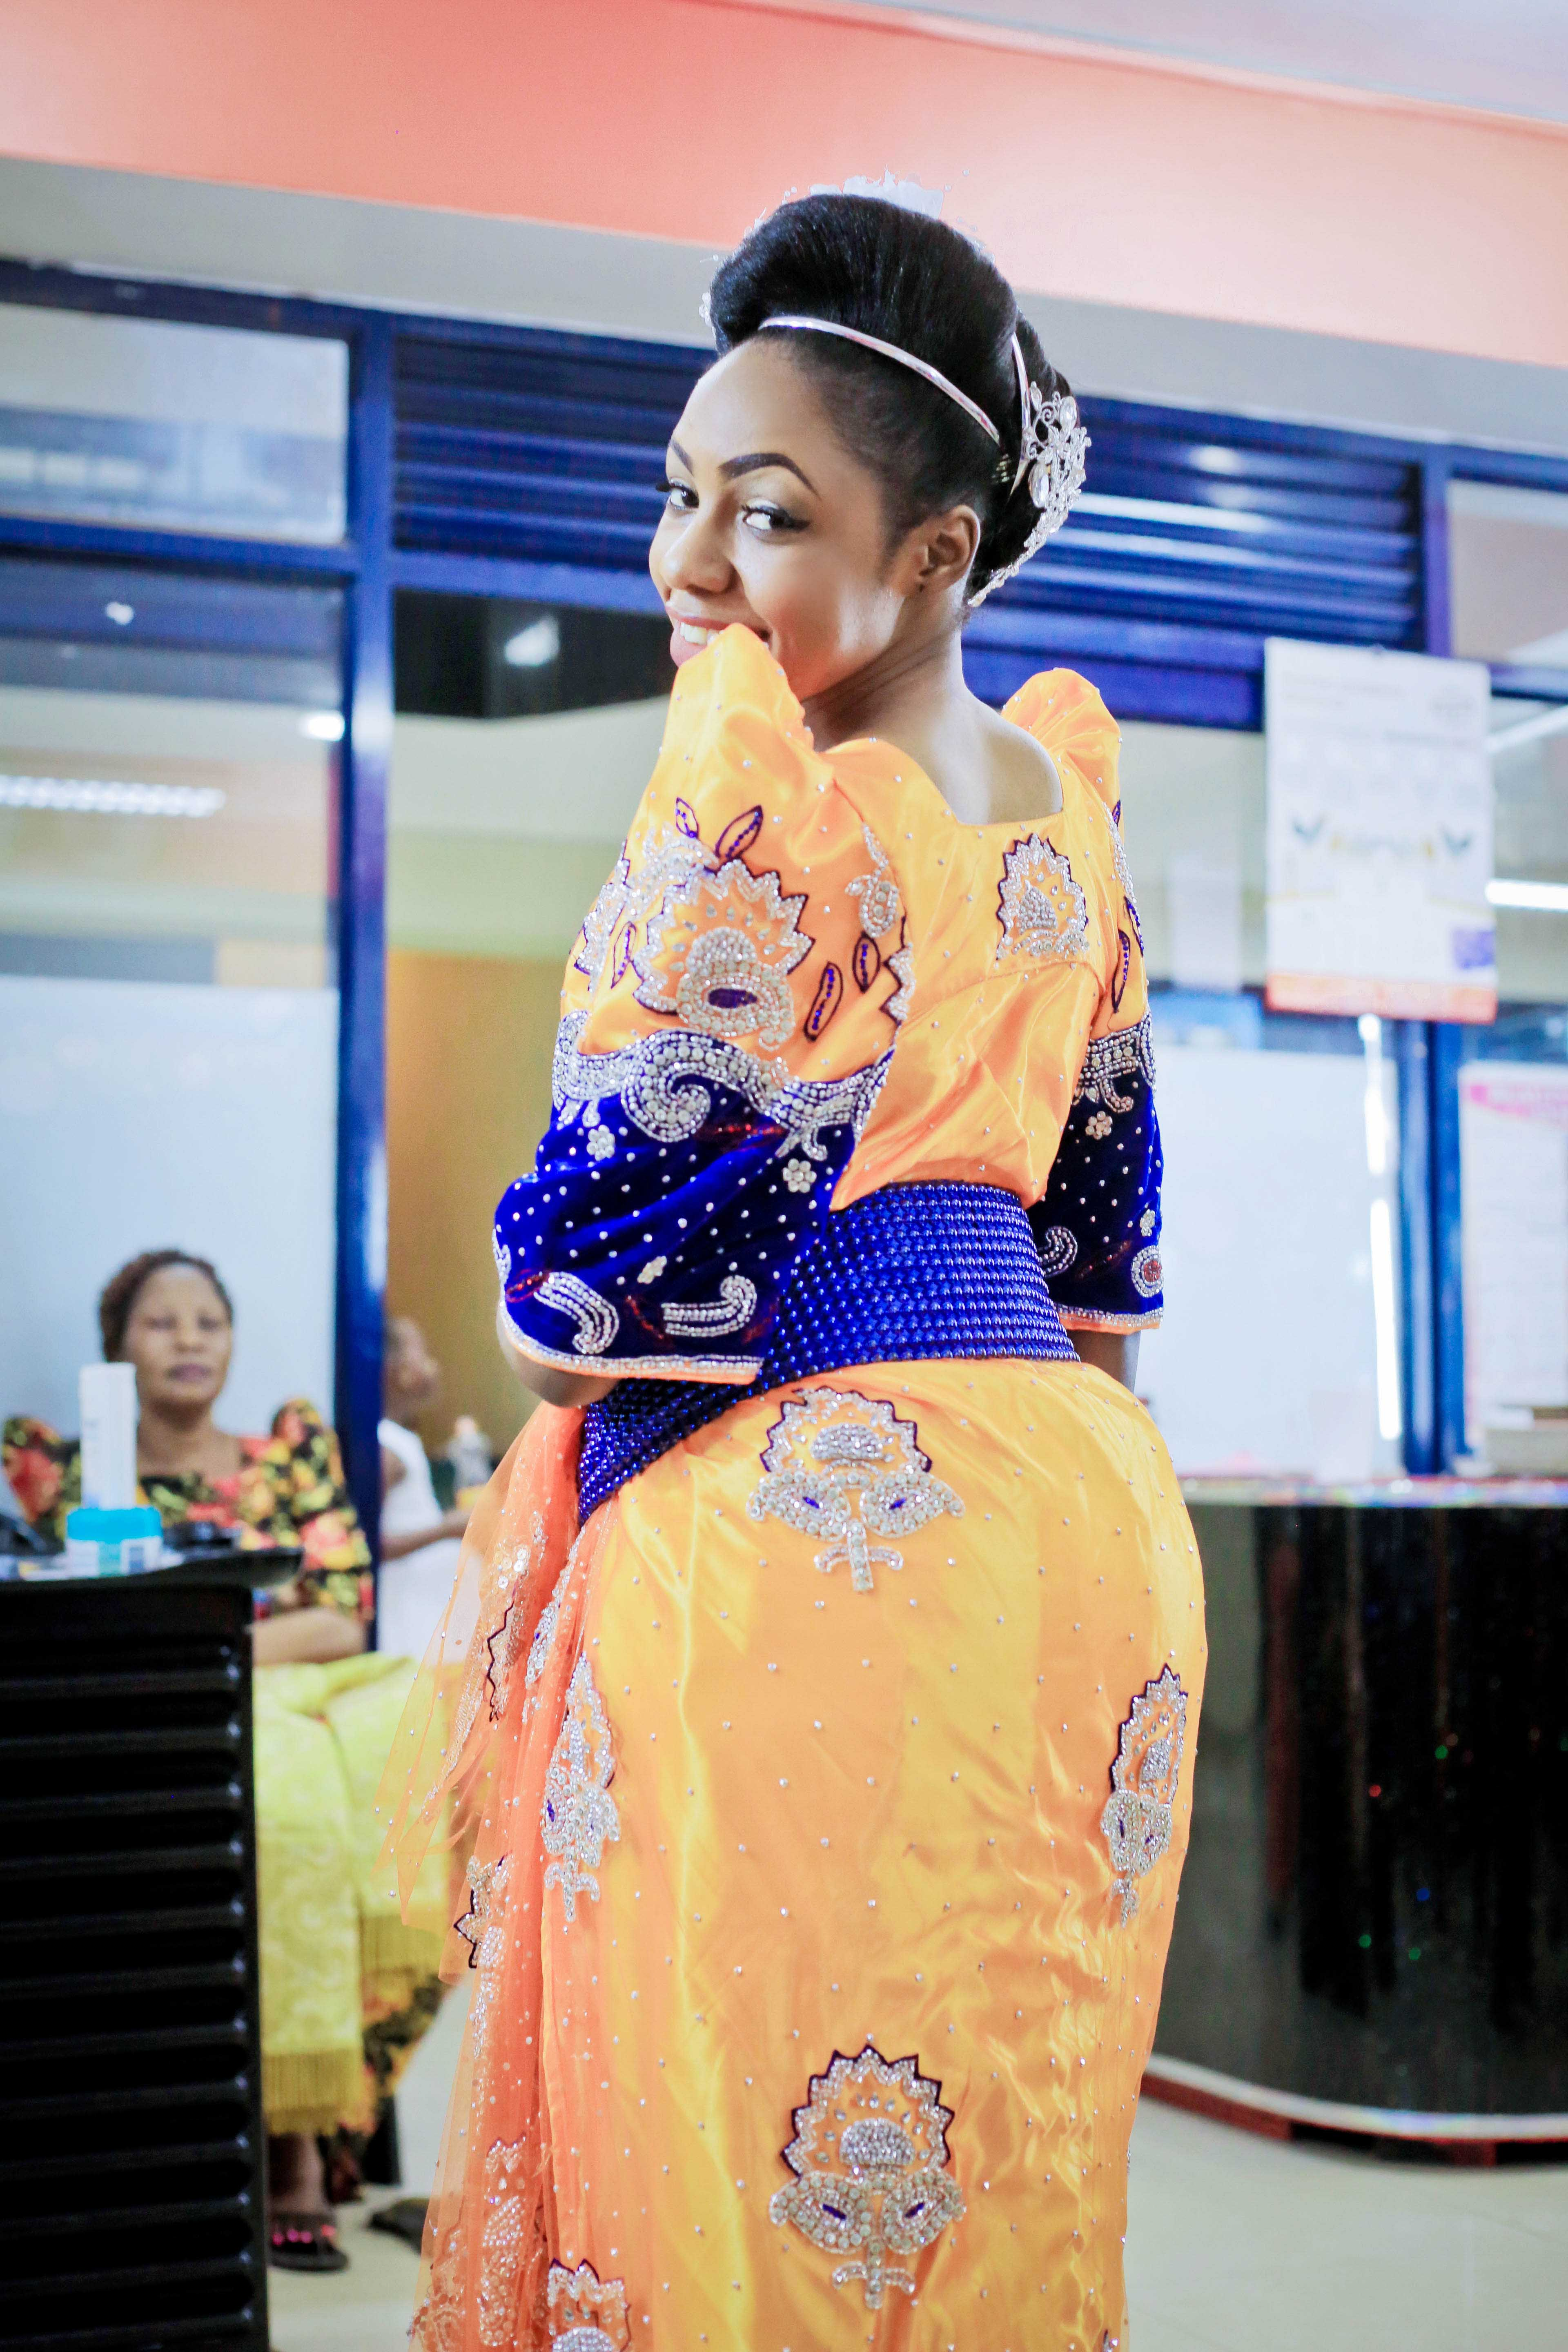 Asha dazzles in a sequined yellow and blue gomesi, photo by Agapix Photography